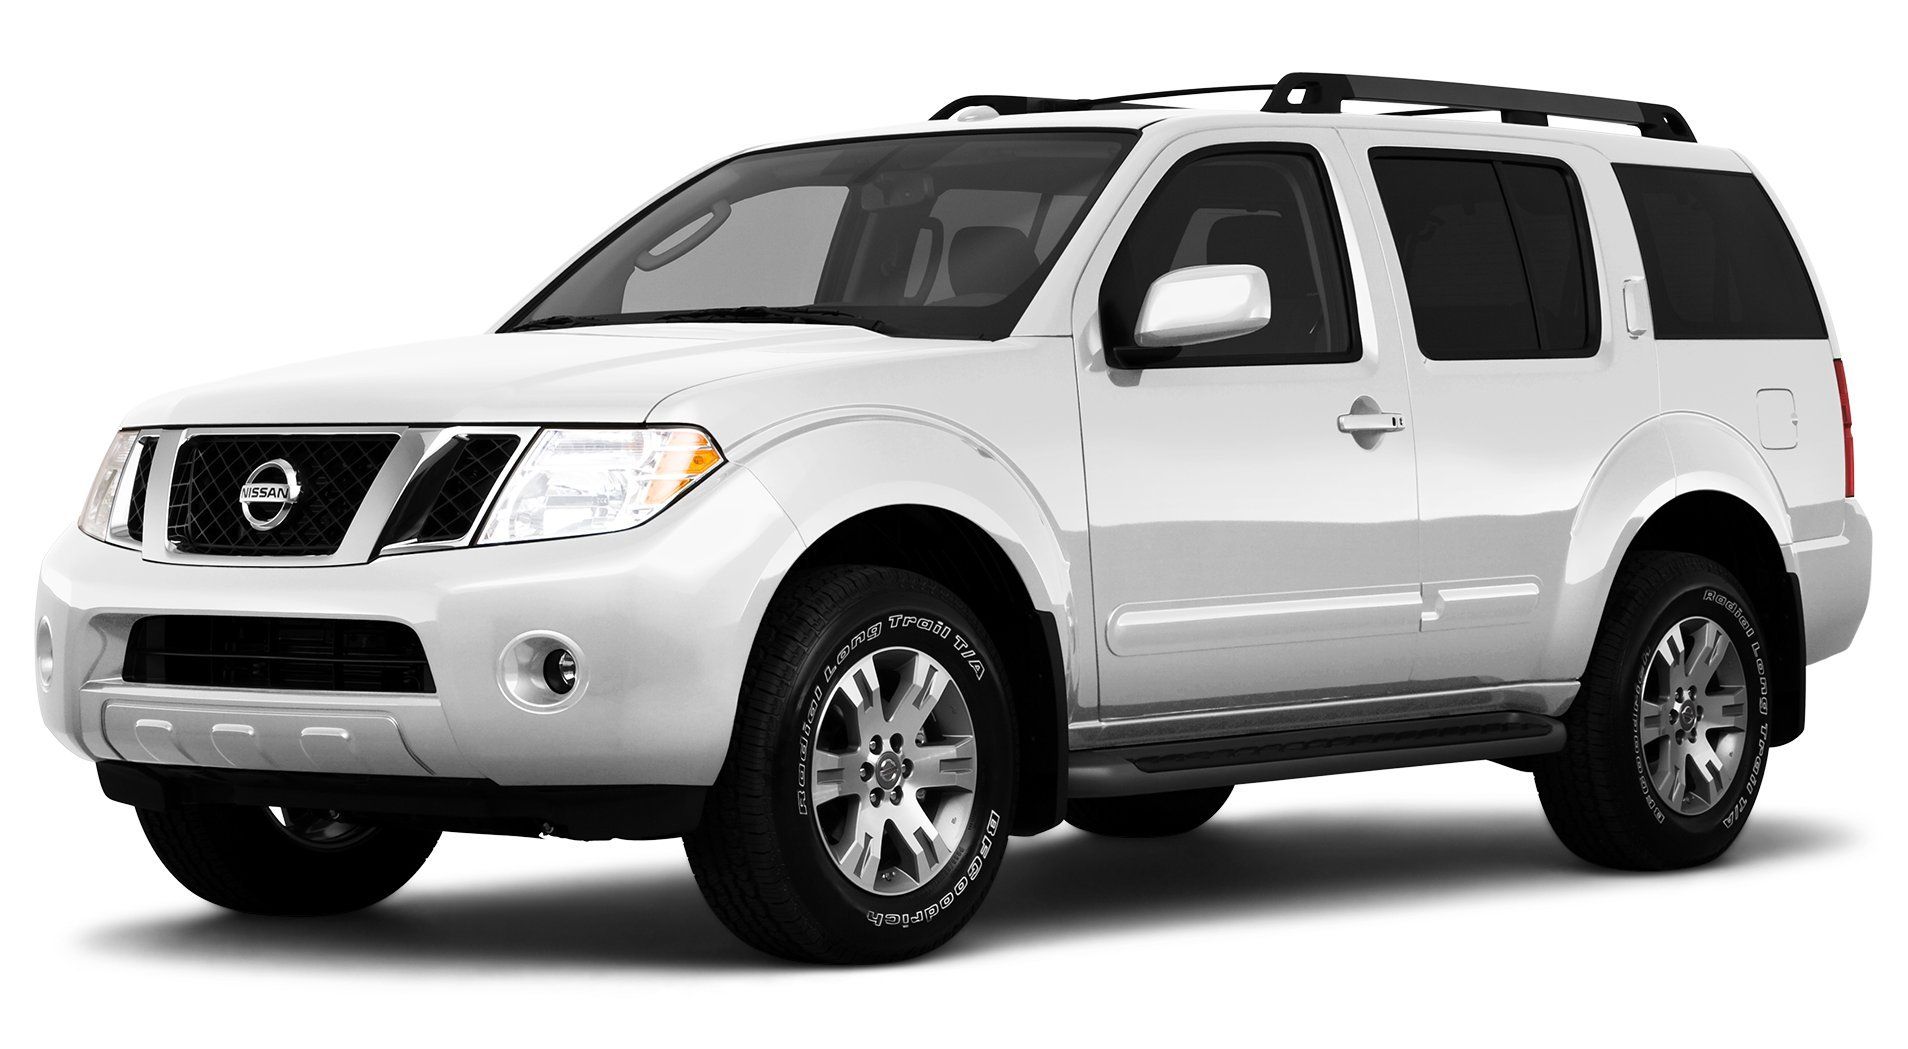 Amazon 2010 Nissan Pathfinder Reviews and Specs Vehicles